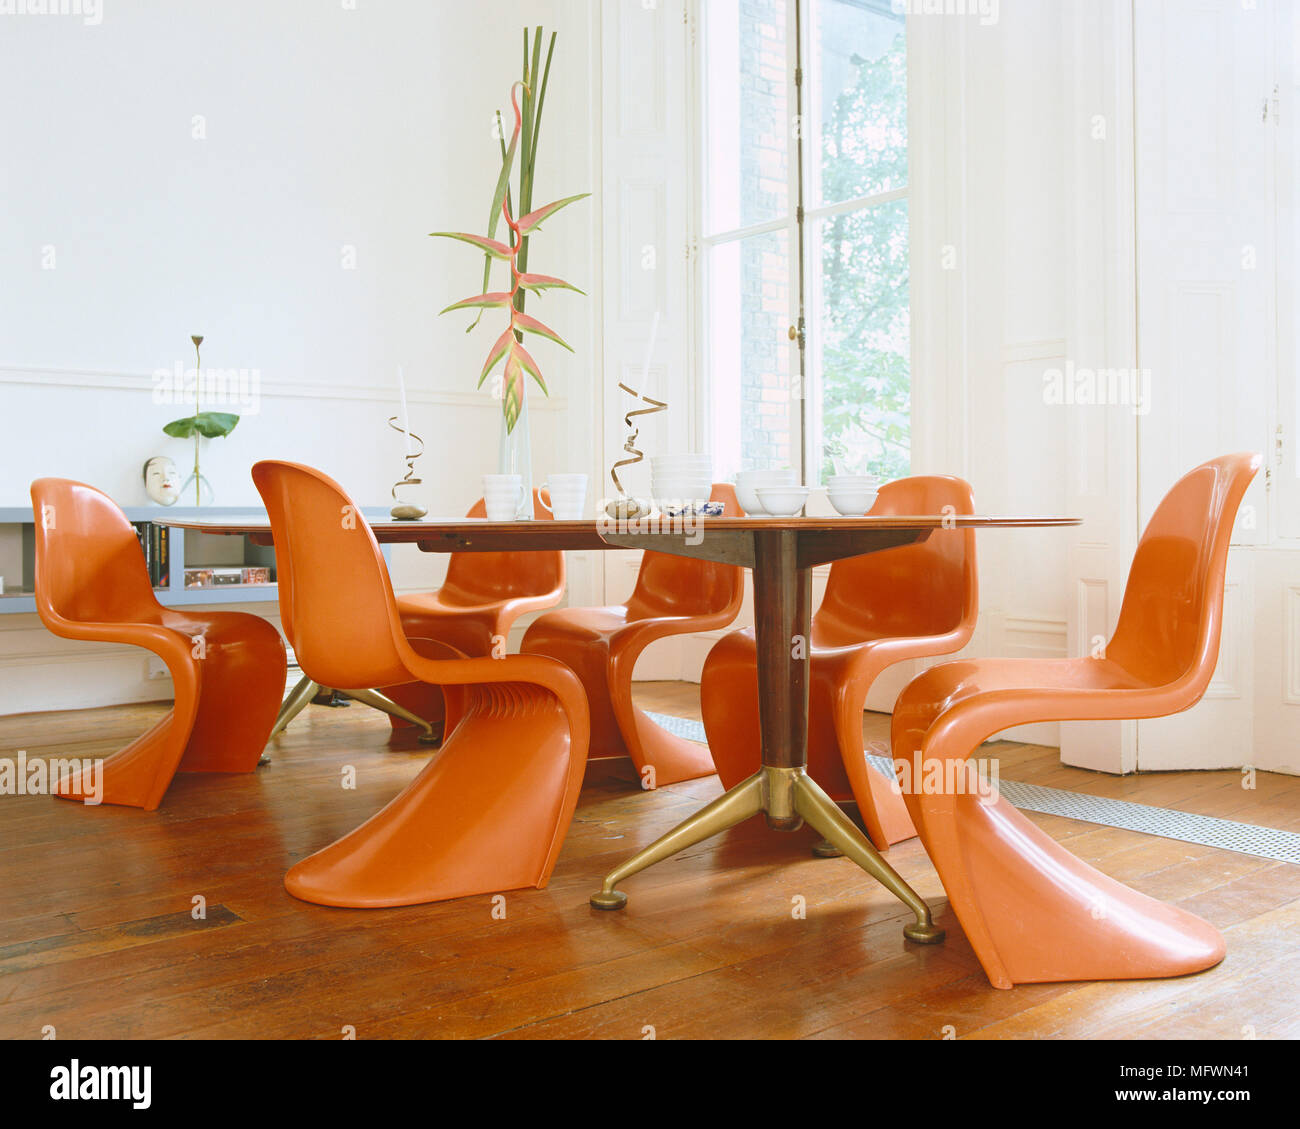 Chaise Panton Verner Panton verner panton red chairs at oval wooden table in